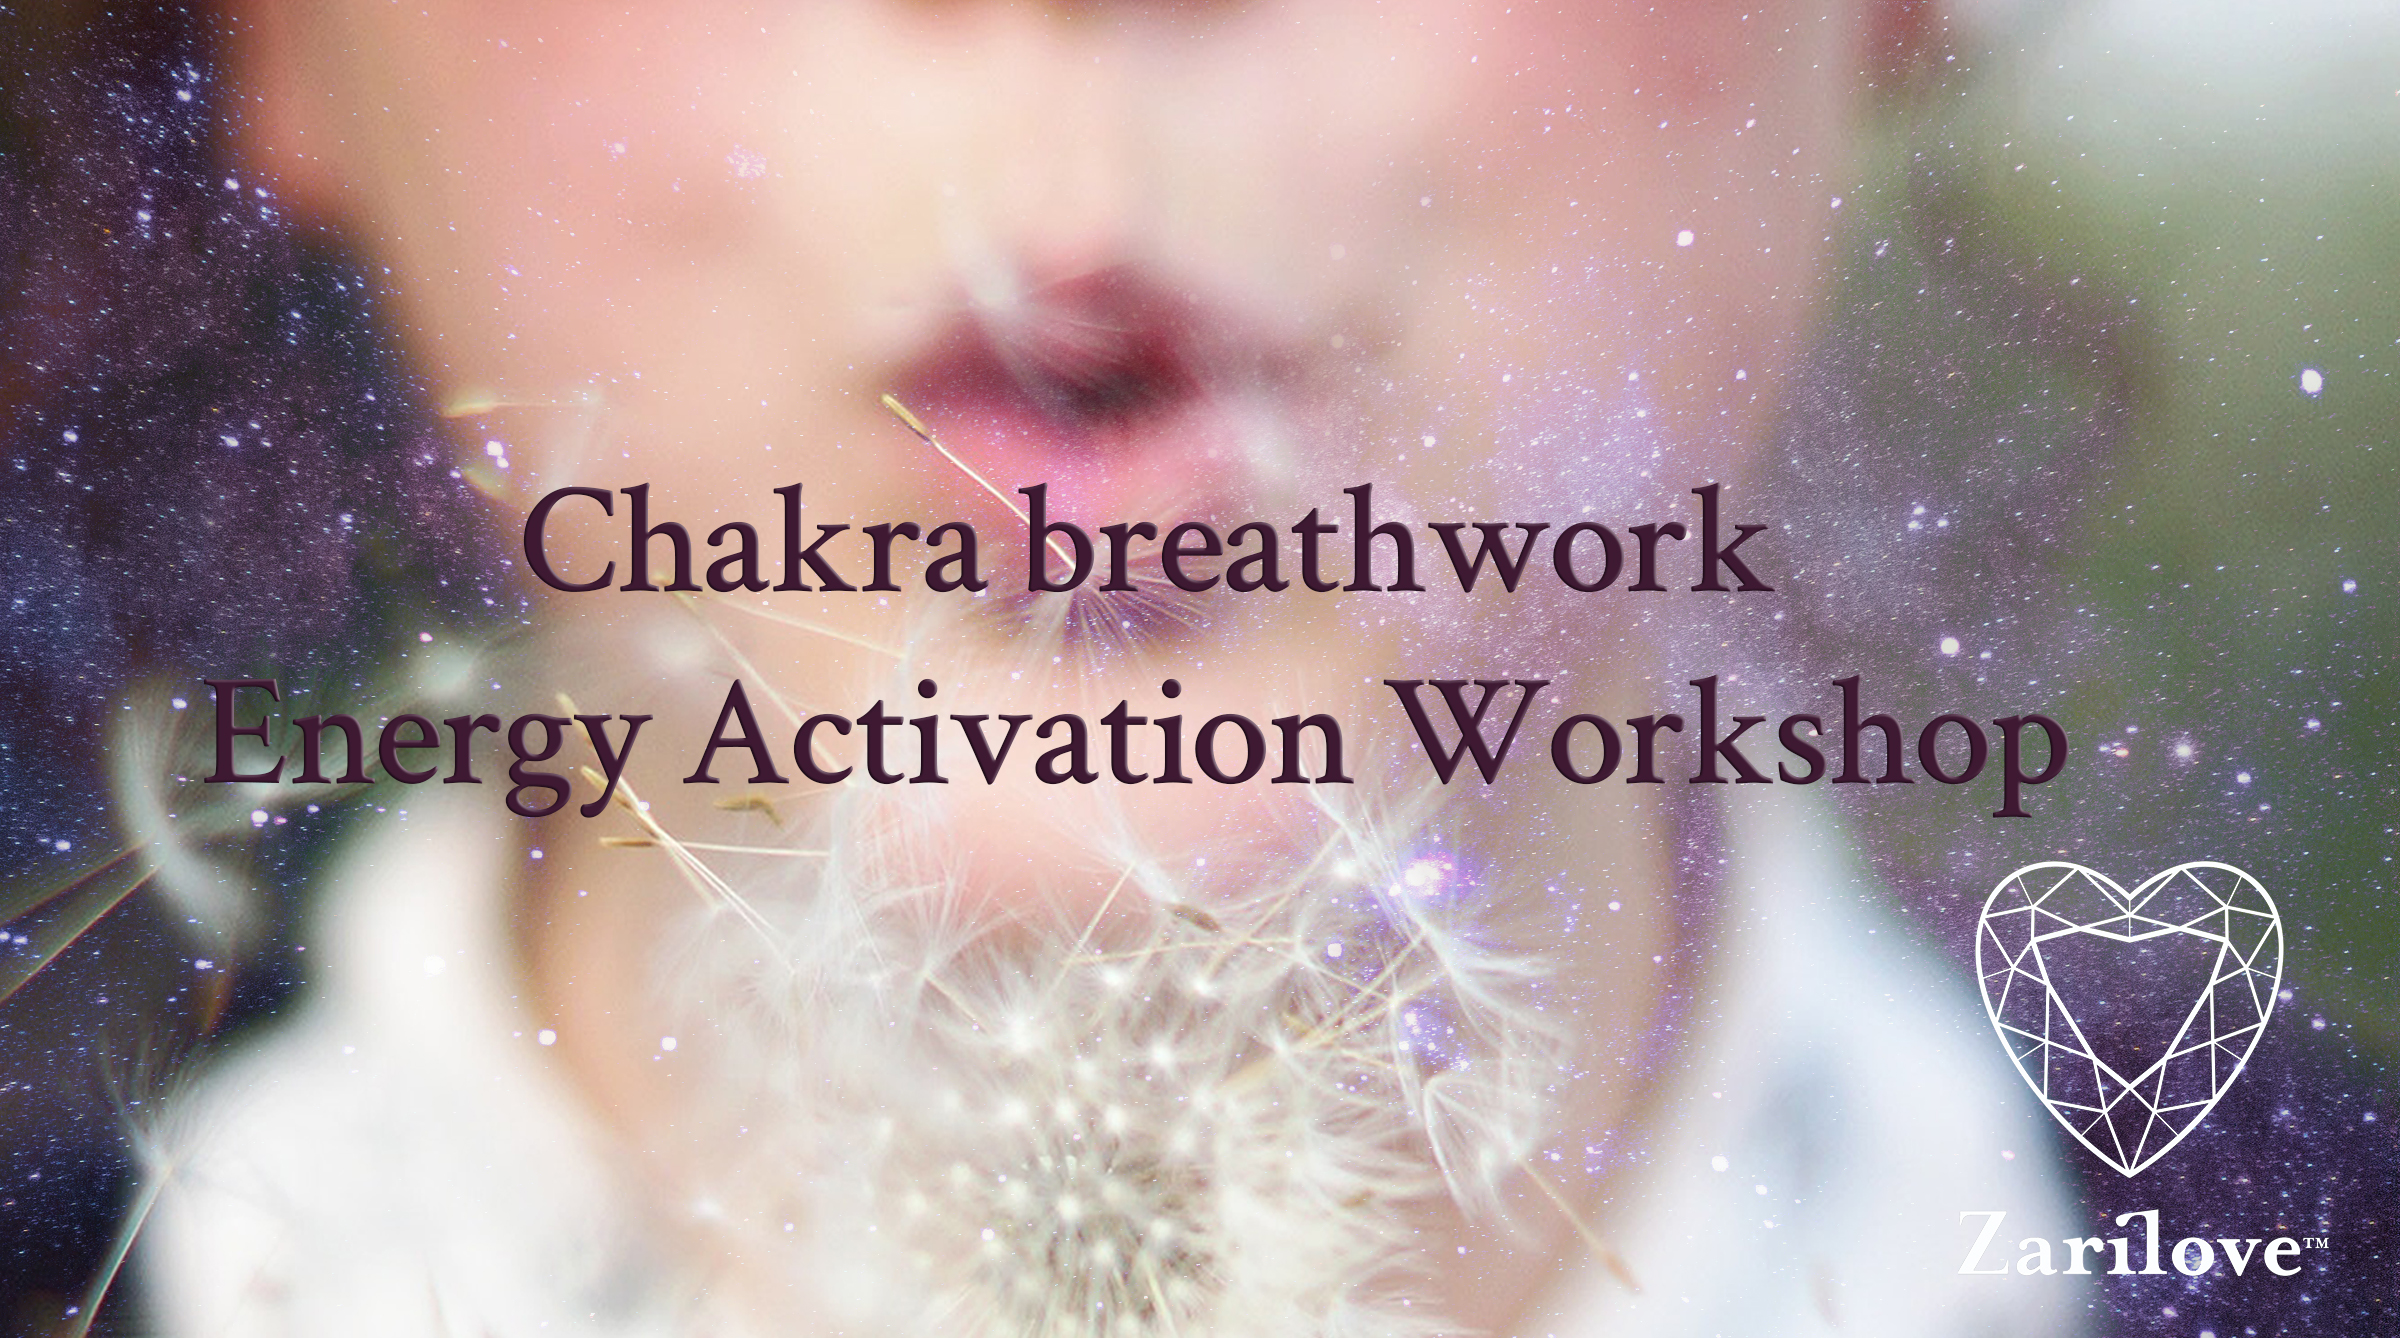 Chakra Breathwork and Energy Activation Workshop.